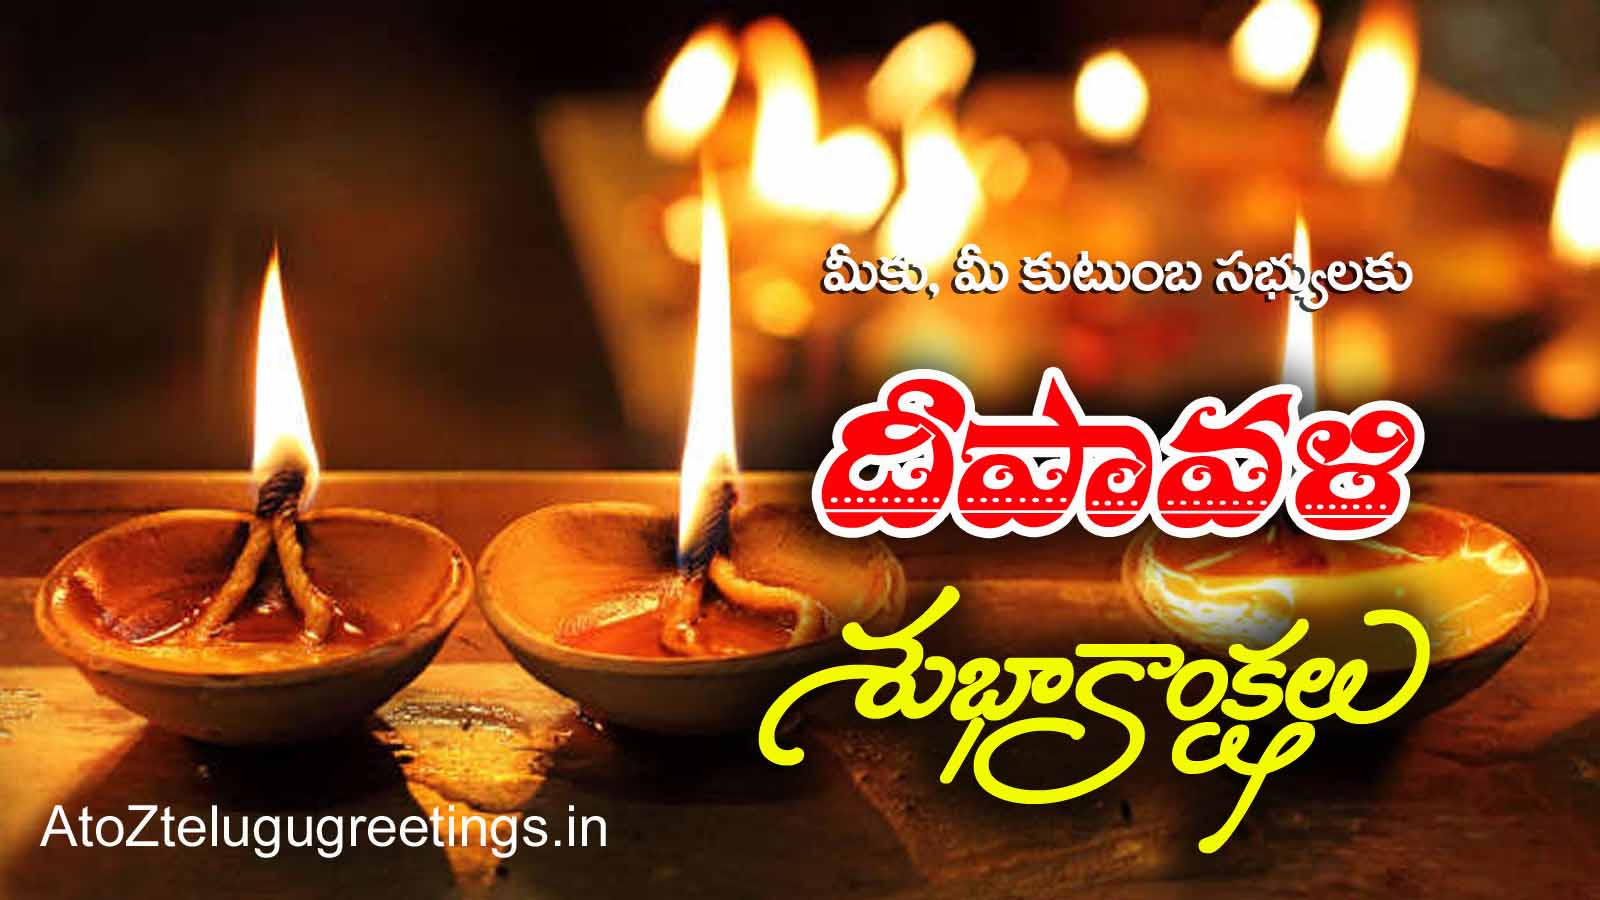 Happy diwali images 2017 in telugu quotes wishes wallpapers diwali greetings messages english diwali wishes in hindi diwali wishes quotes diwali greeting card messages diwali greeting card designs diwali greeting m4hsunfo Gallery